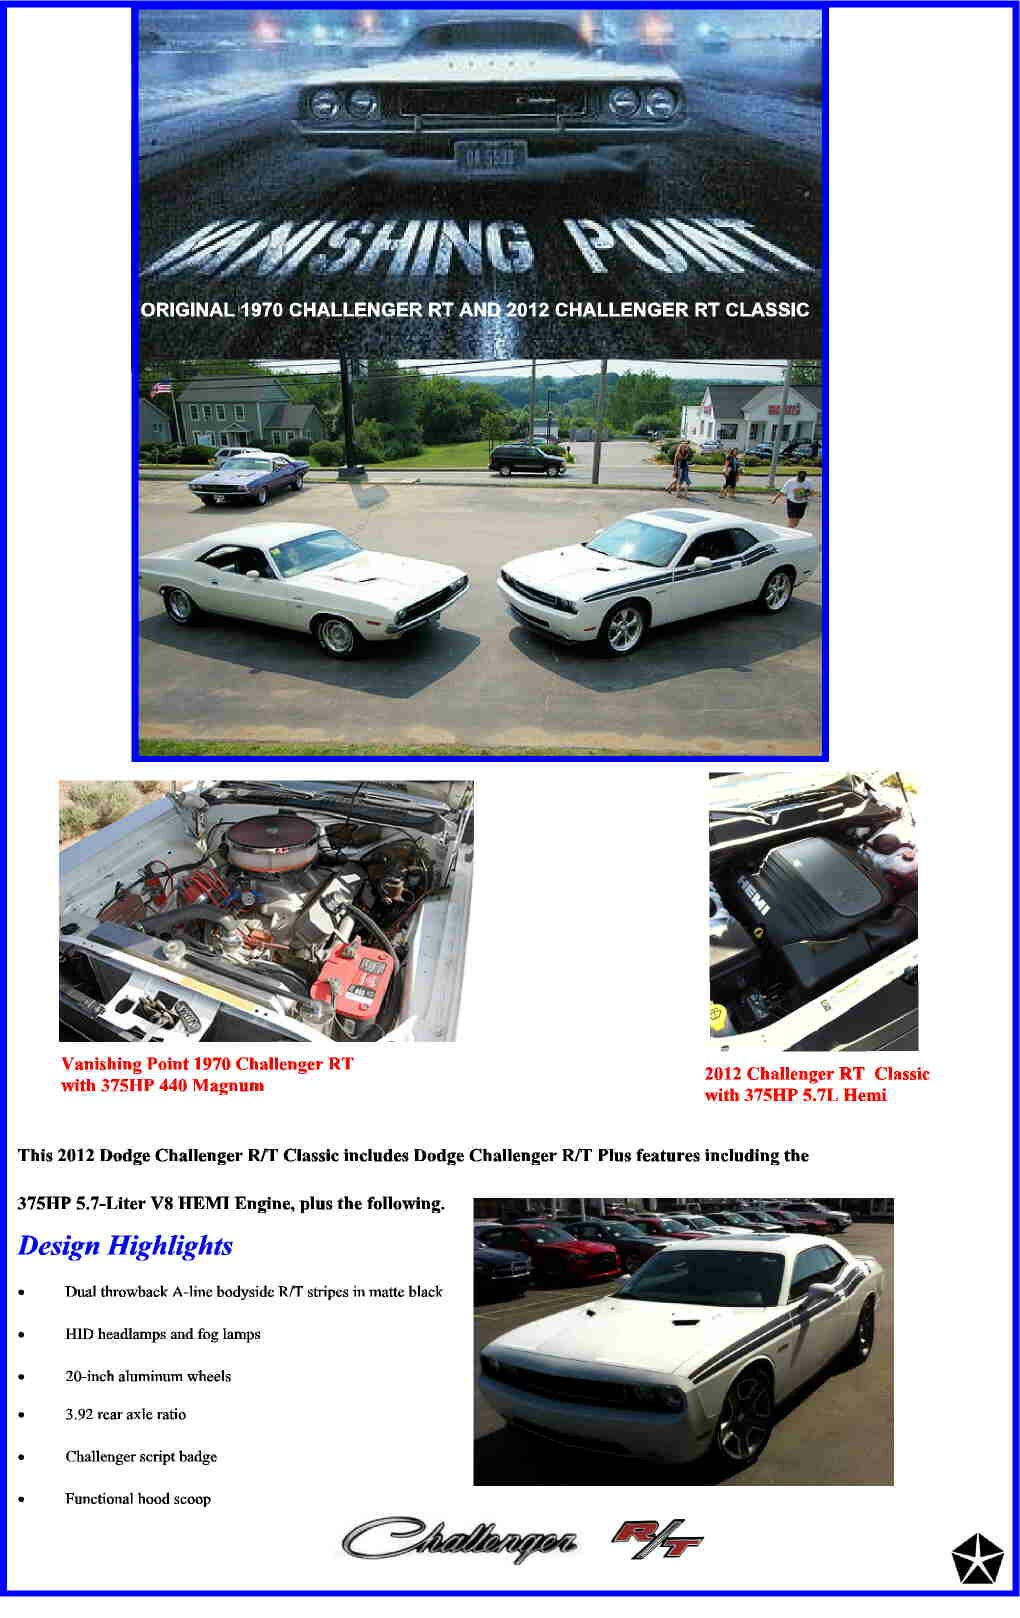 My 2012 Dodge Challenger R T Classic Wiring Harness Here Are Some Vintage Ads From The Early 1970s